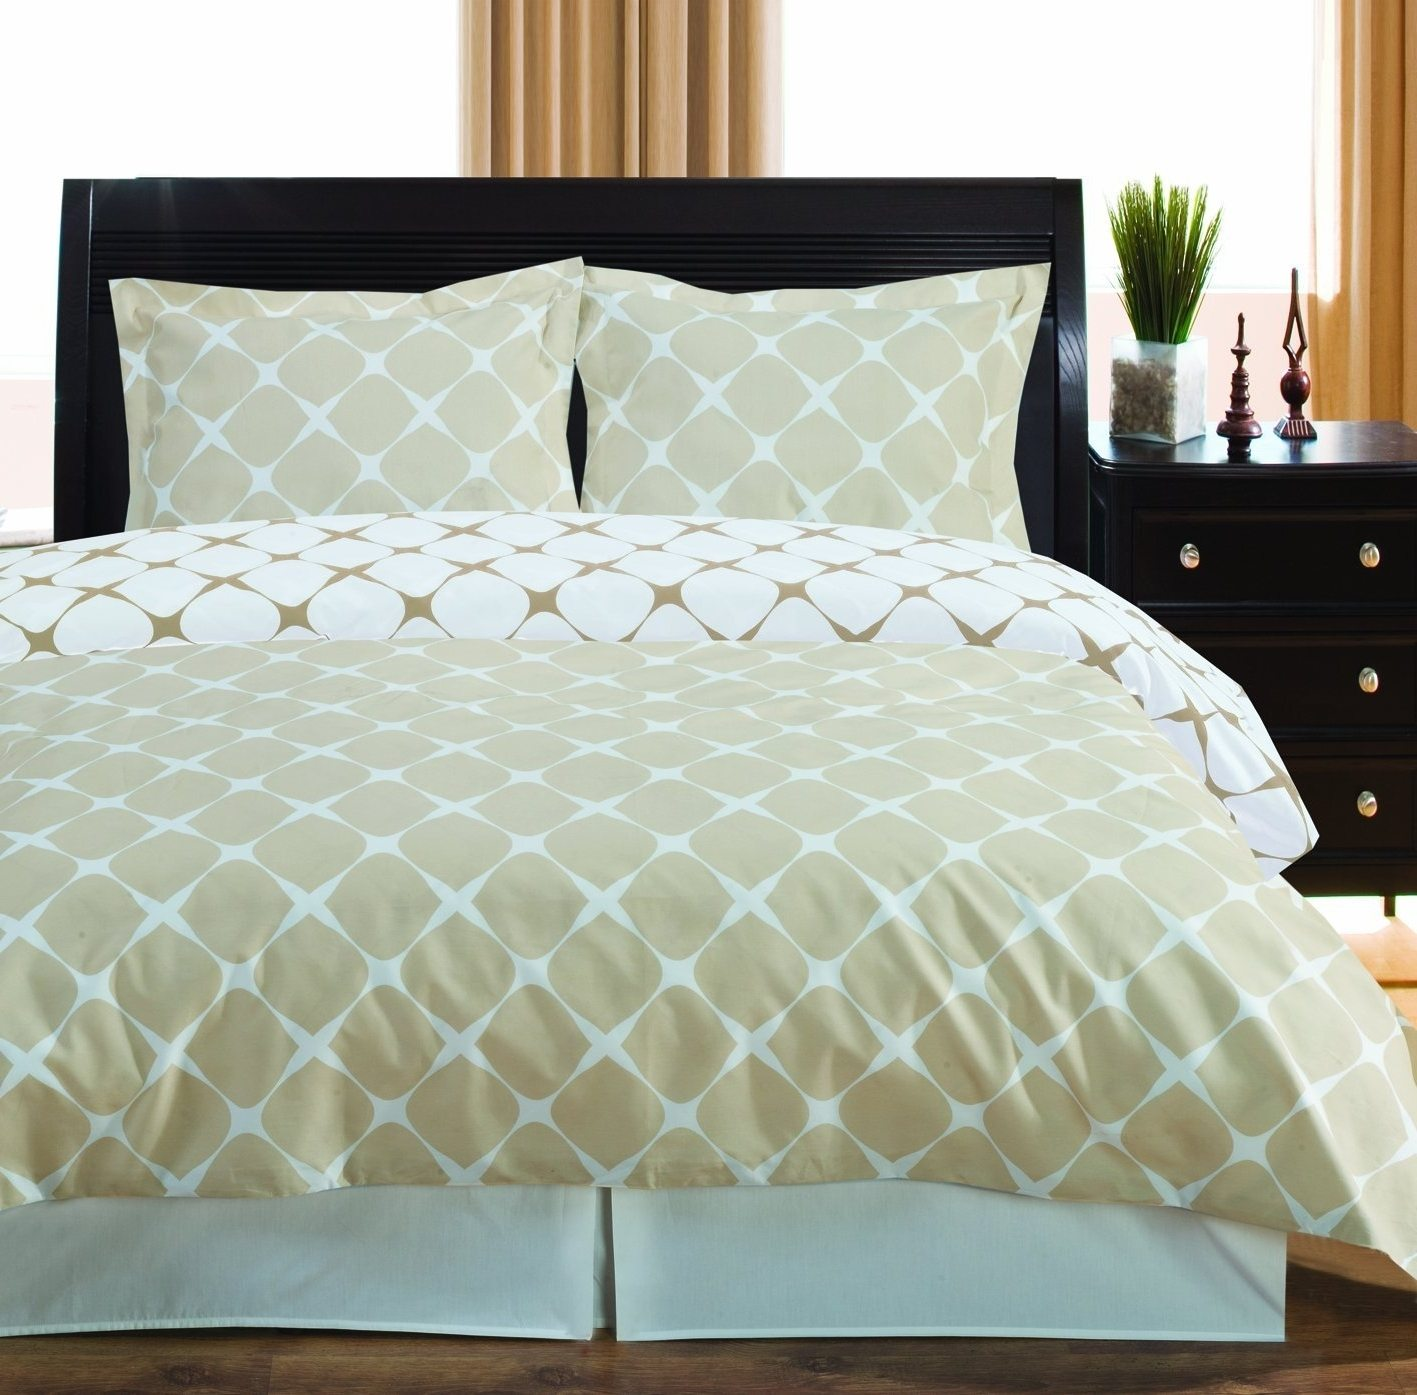 The Cheetah Girl Queen Bed Skirt from Sweet Jojo Designs adds a cheetah print touch to any bedroom, as this dust ruffle is used to conveniently hide under the bed storage as well as look stylish and fun.